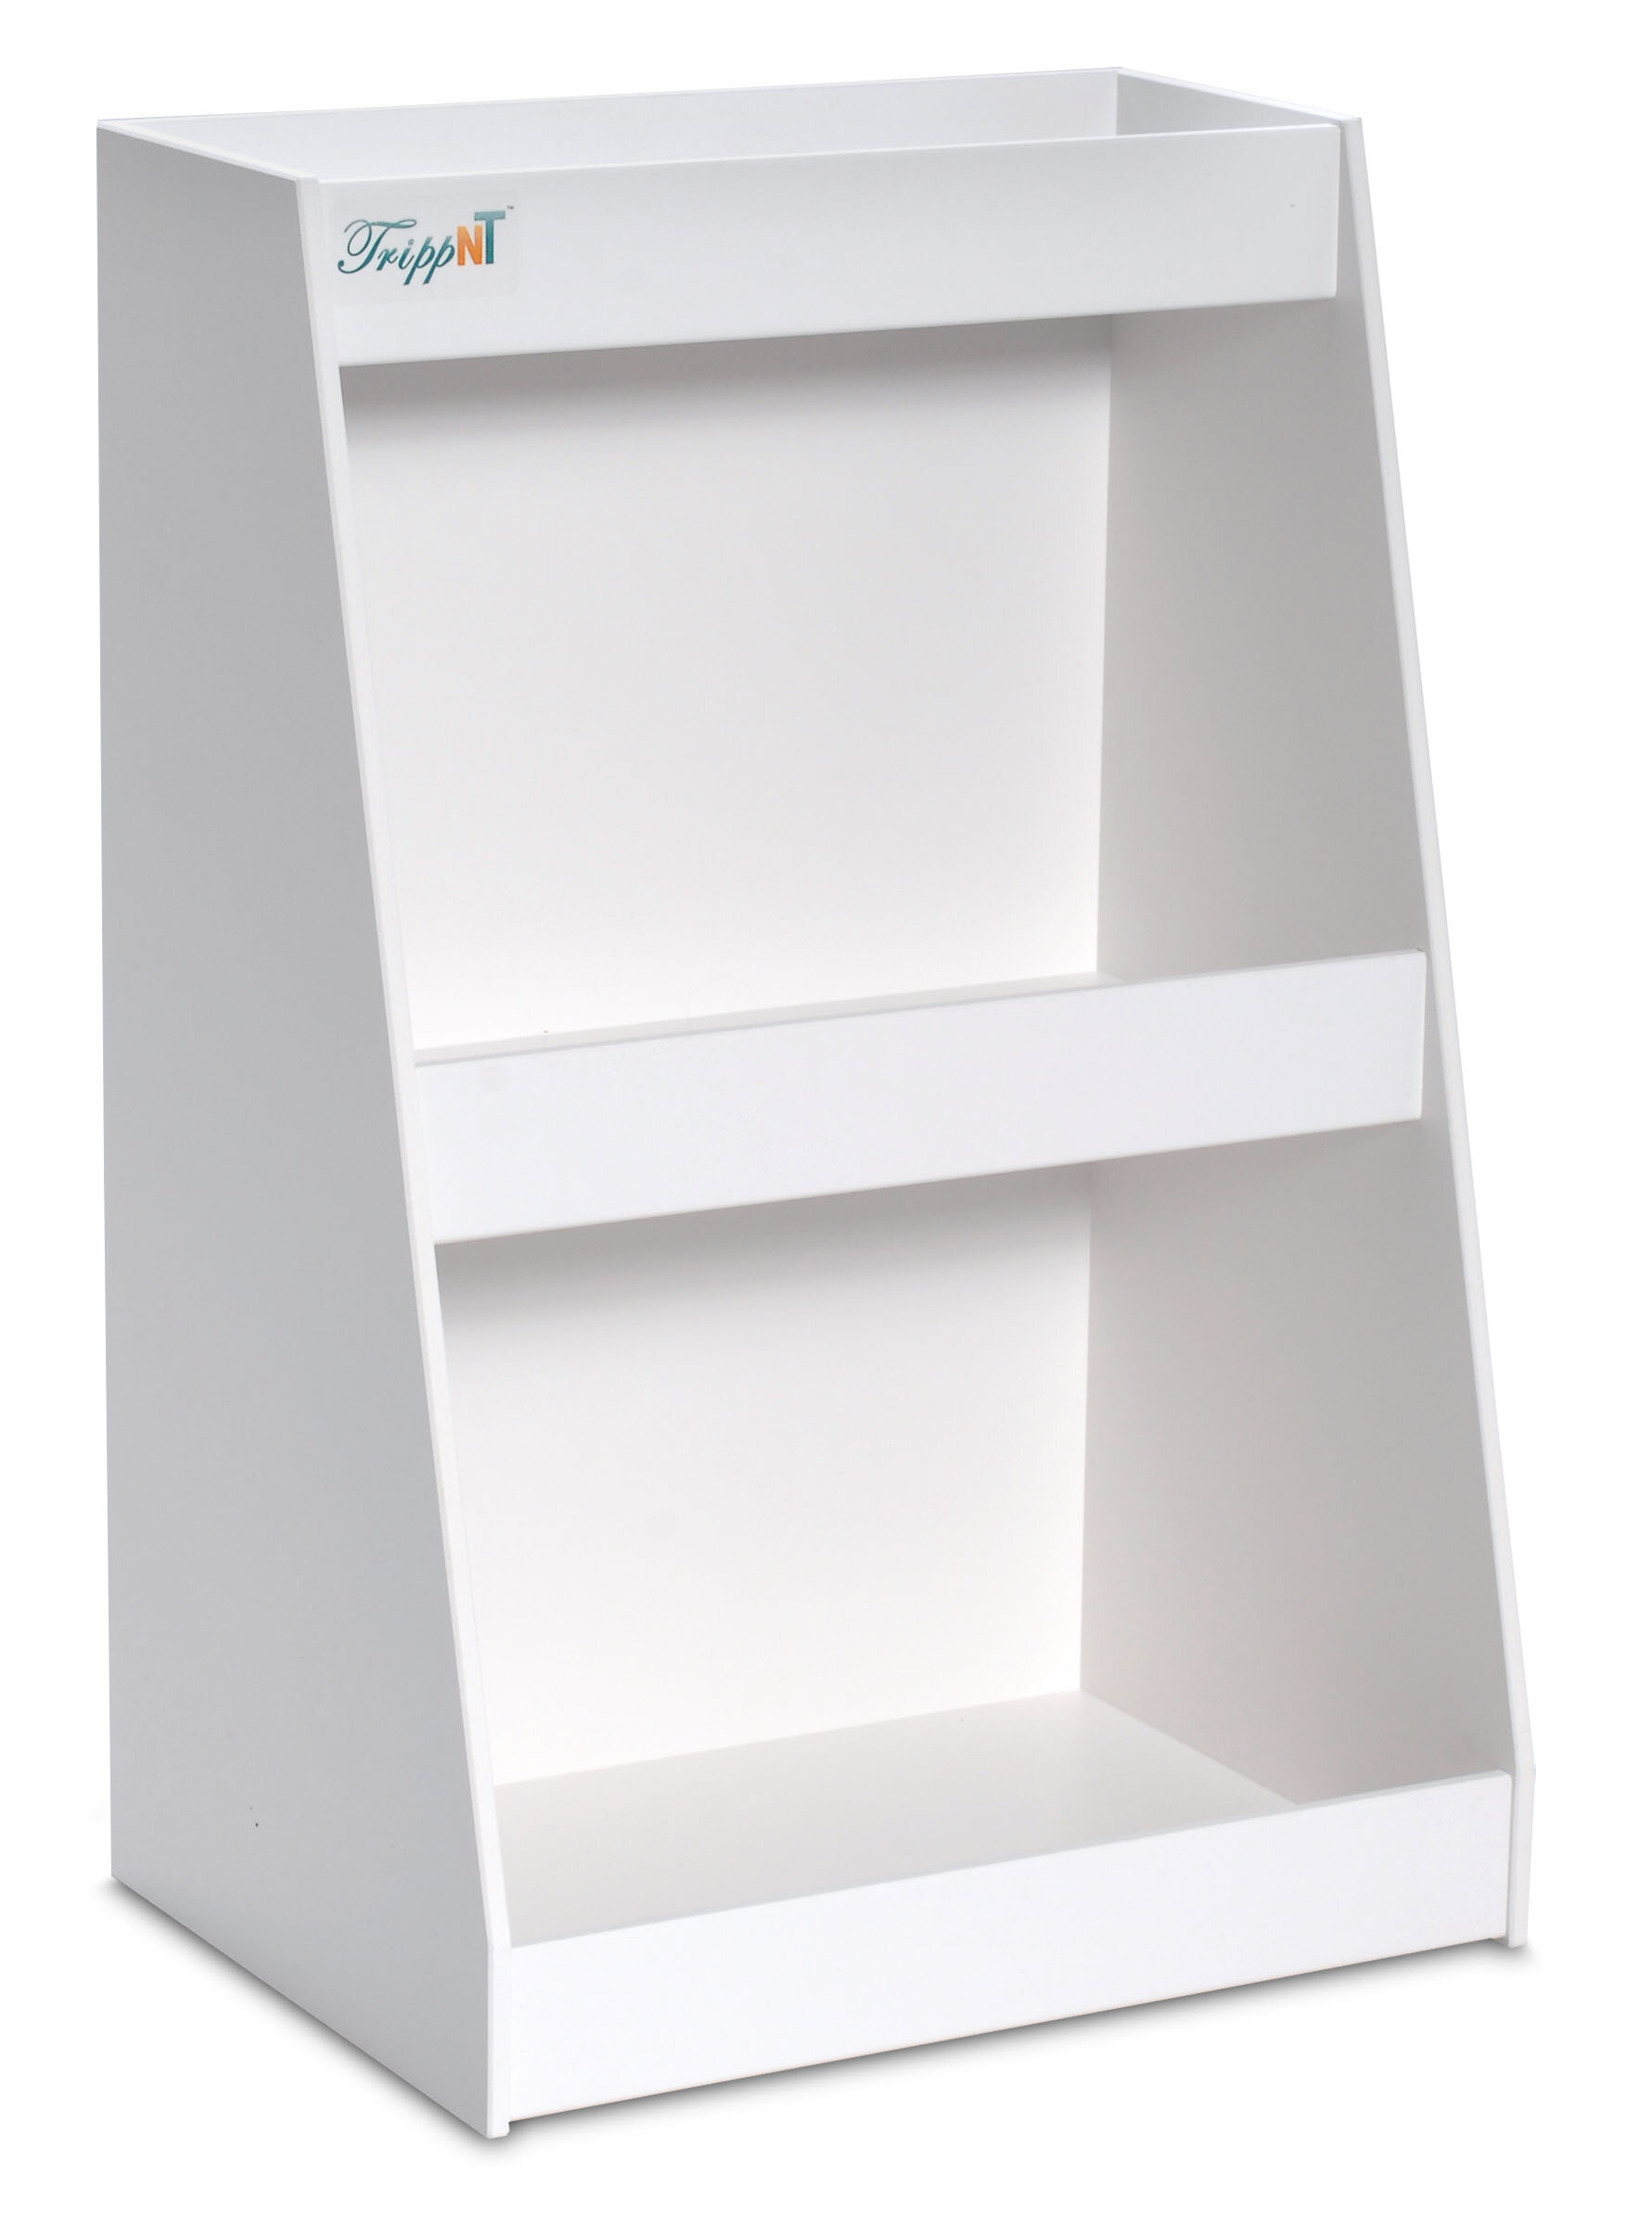 Trippnt Triple Angled Shelf Wayfair